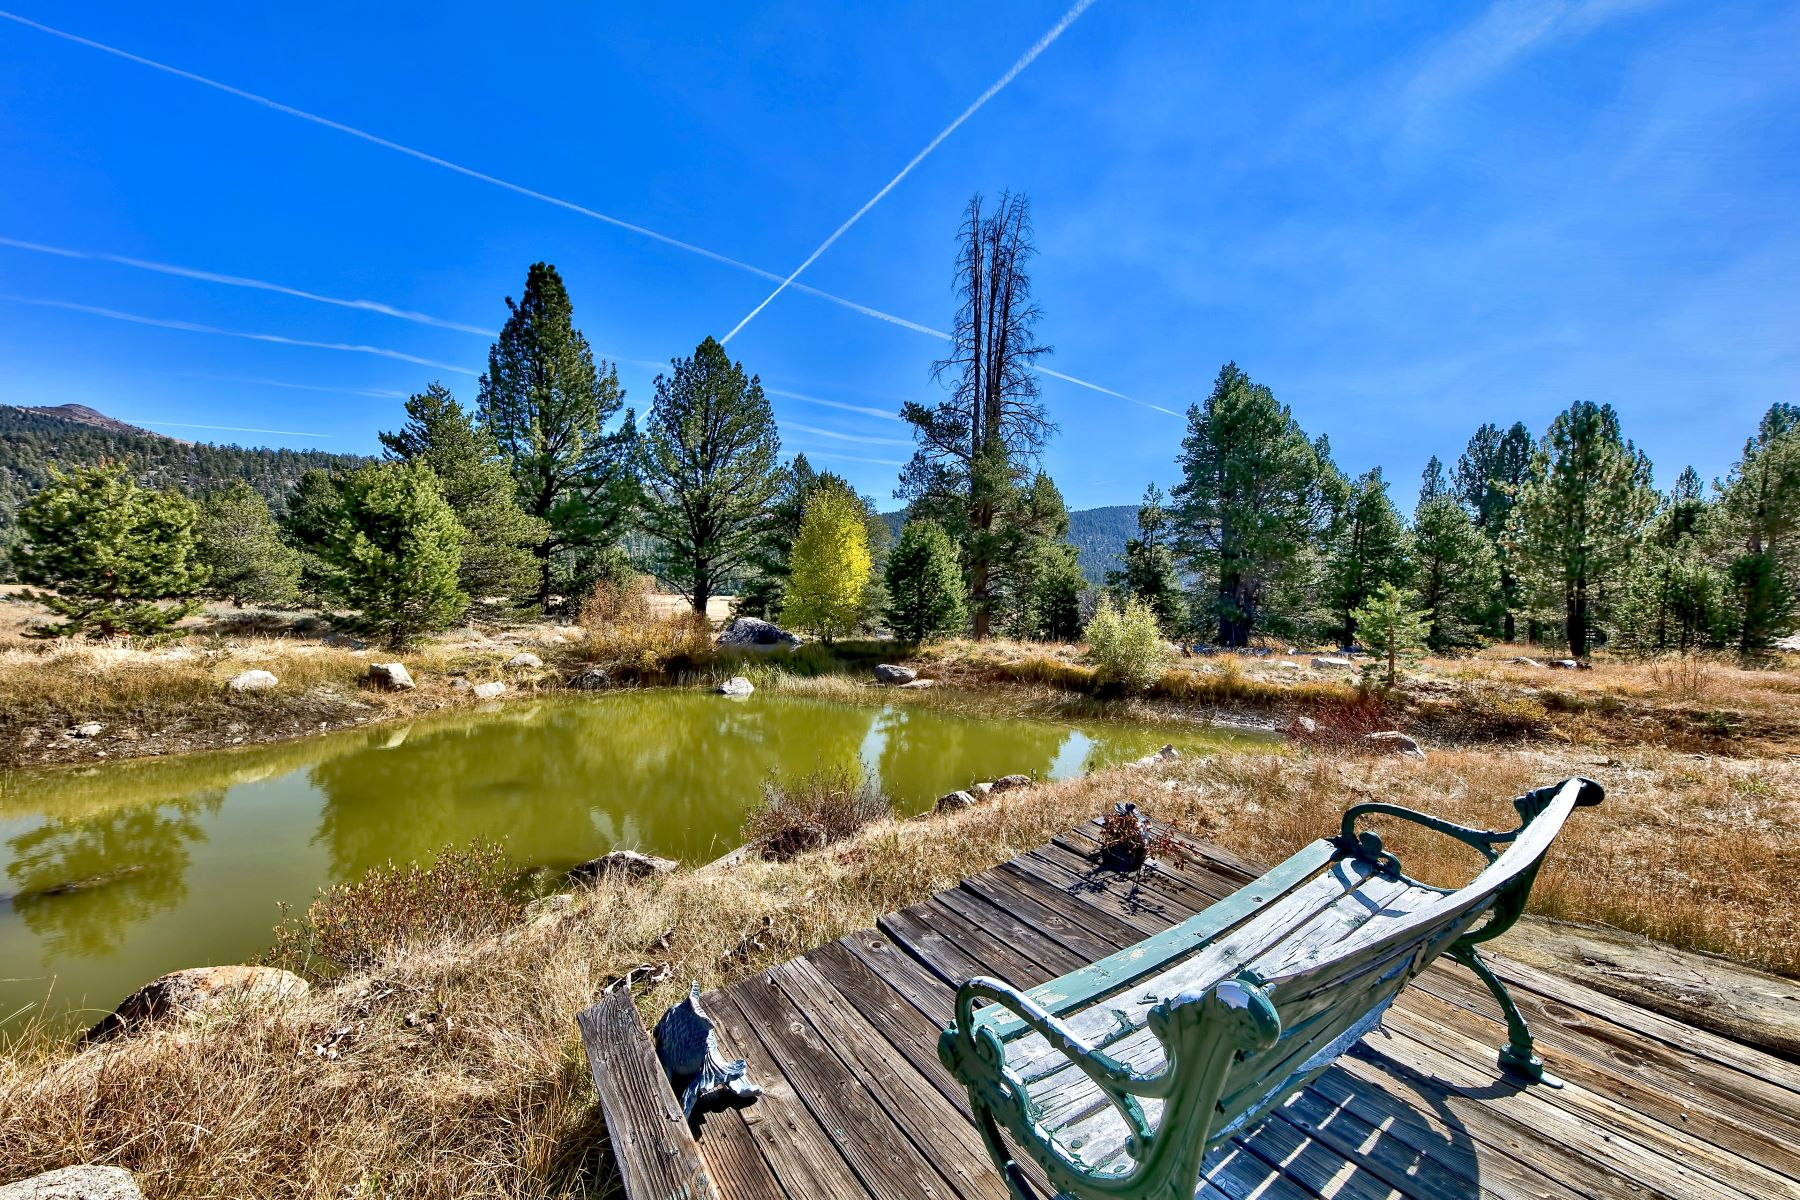 Additional photo for property listing at 1251 Blue Lakes Road, Markleeville, CA, 96120 1251 Blue Lakes Road 马克利维尔, 加利福尼亚州 96120 美国